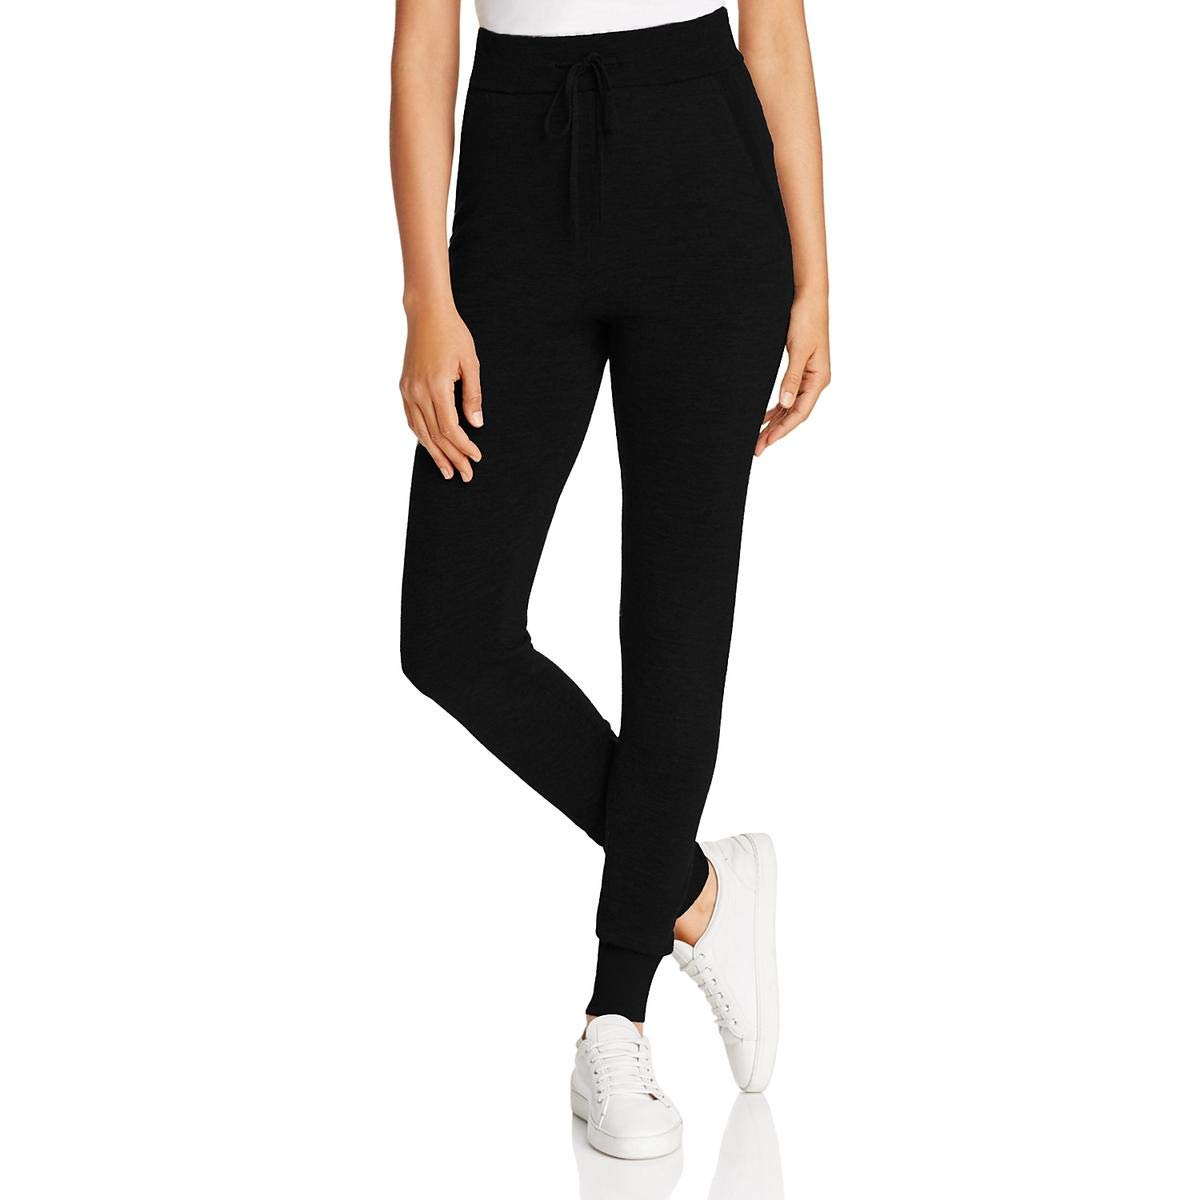 quality select for genuine get online Donna Karan Womens Merino Wool Knit Jogger Pants Black L at ...